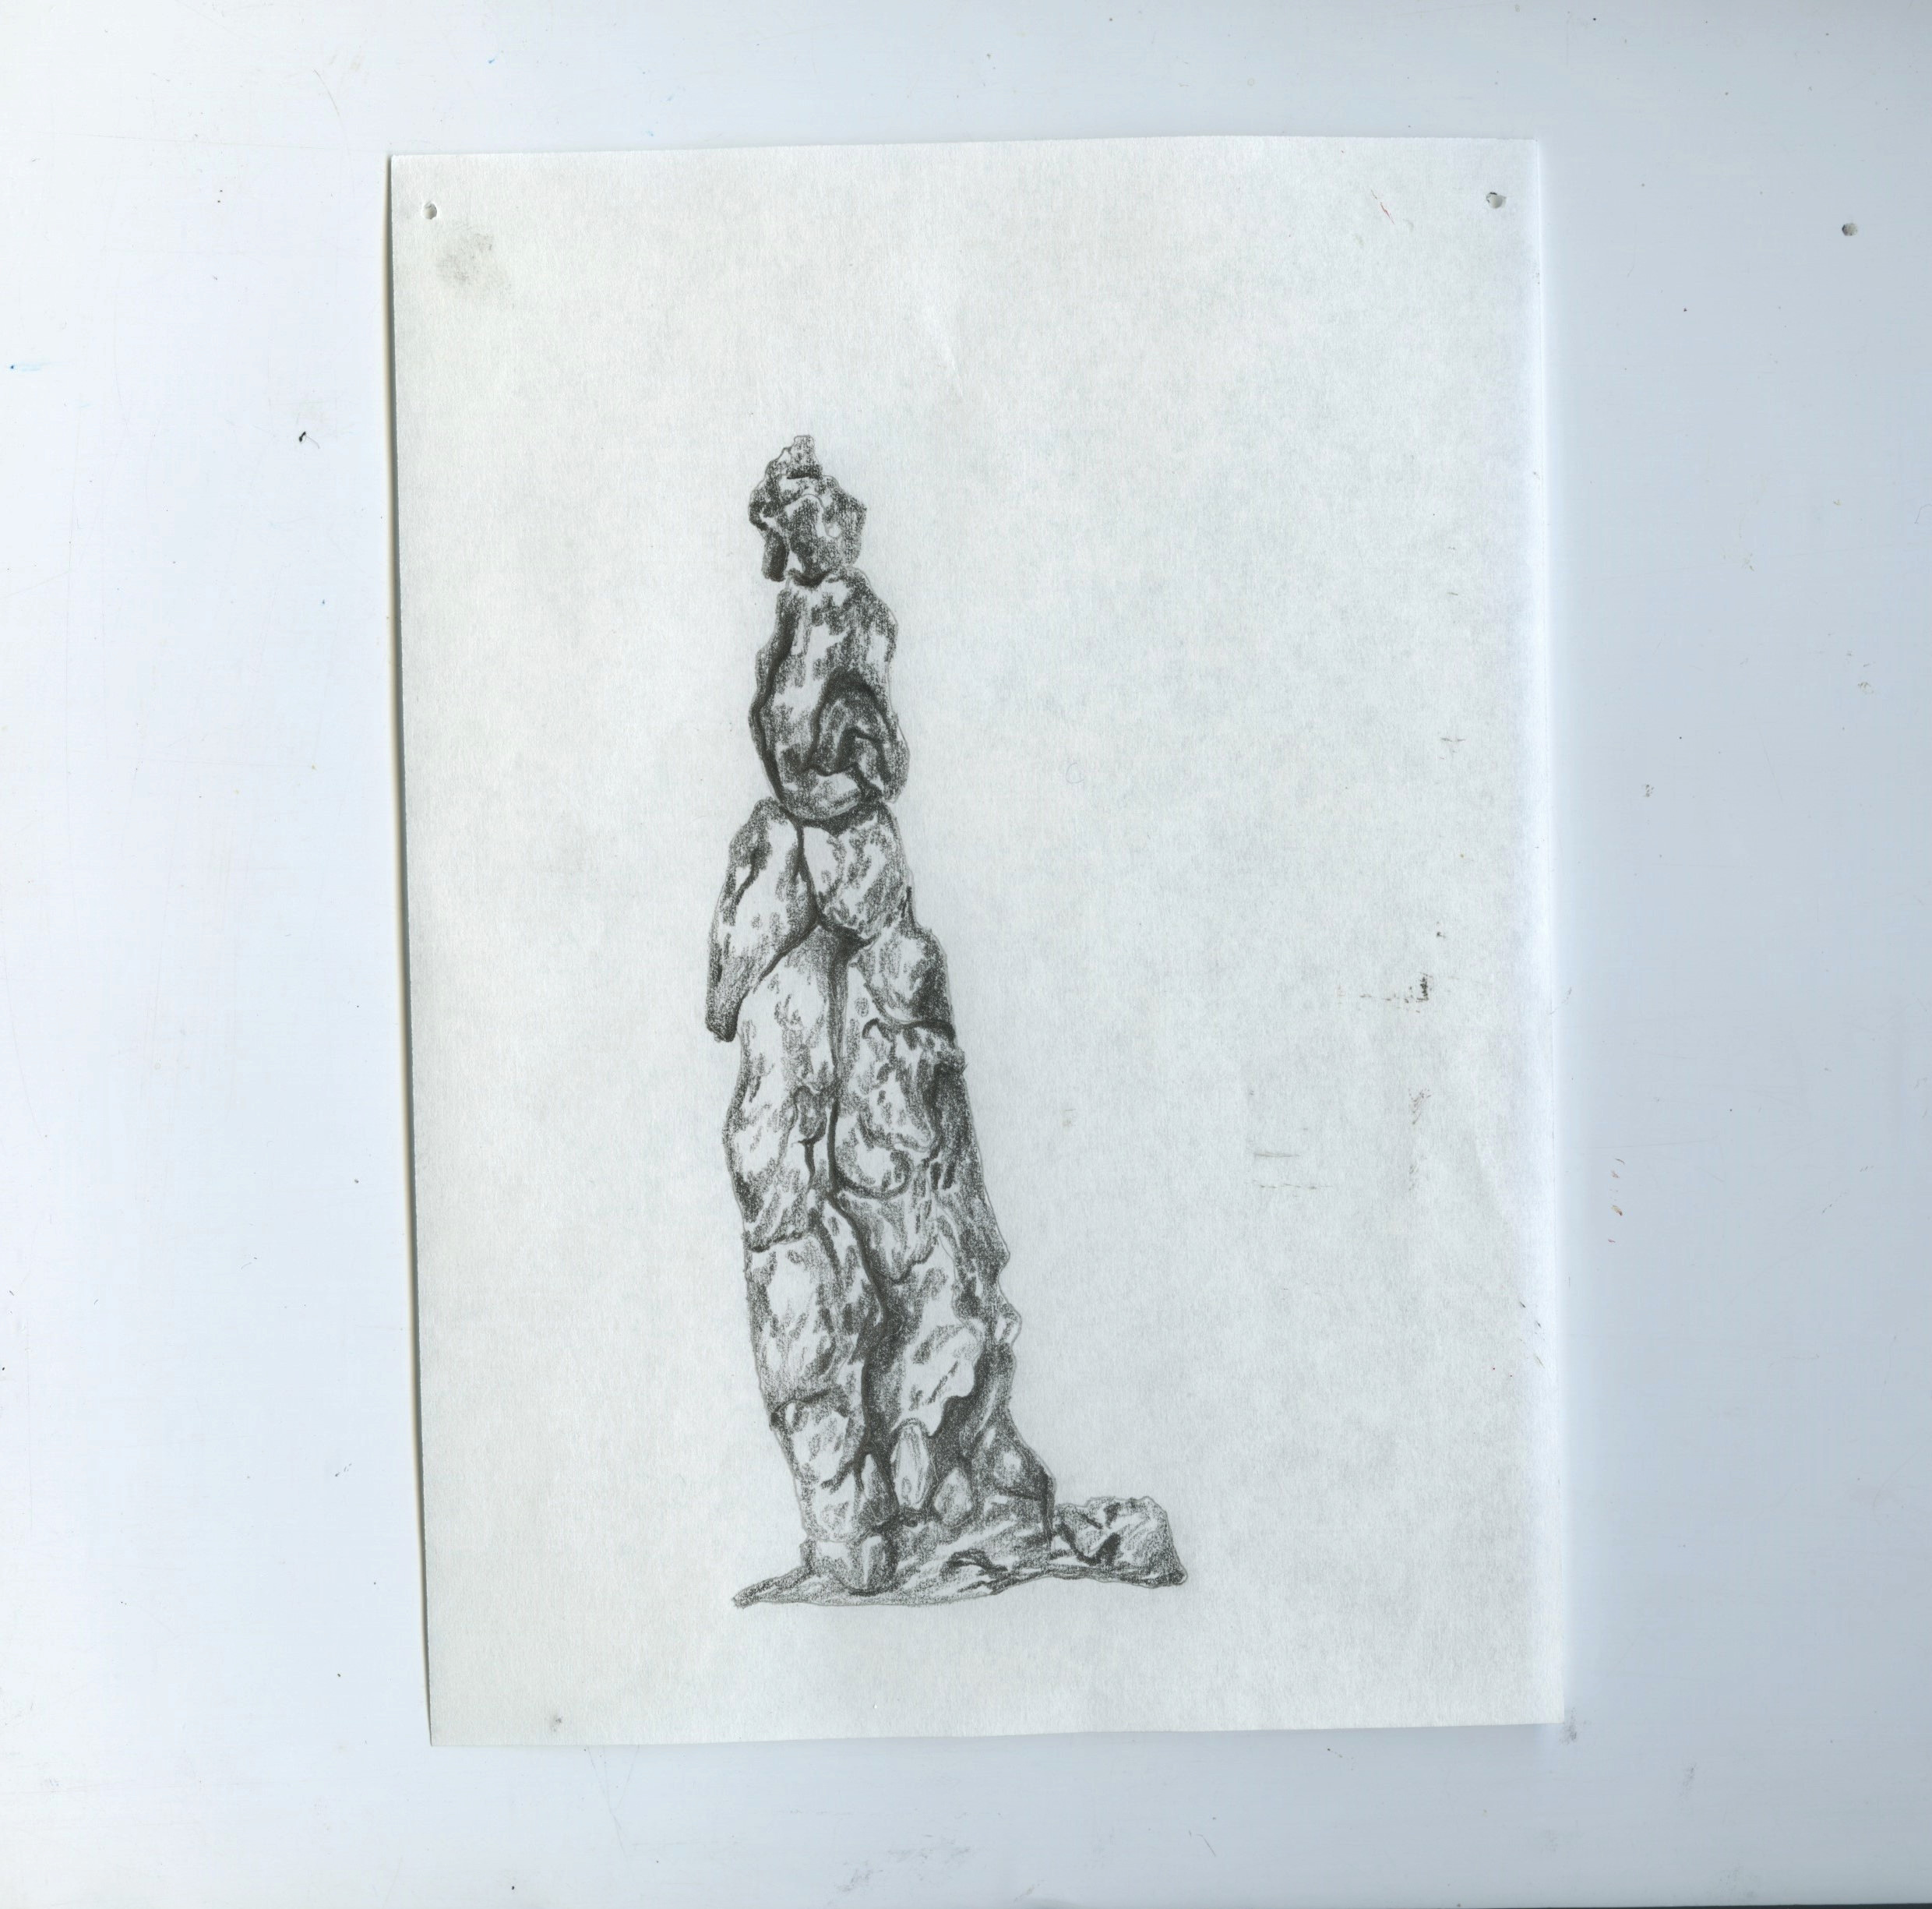 Scanned sheet of Bible paper with a pencil drawing of a salt pillar on it.